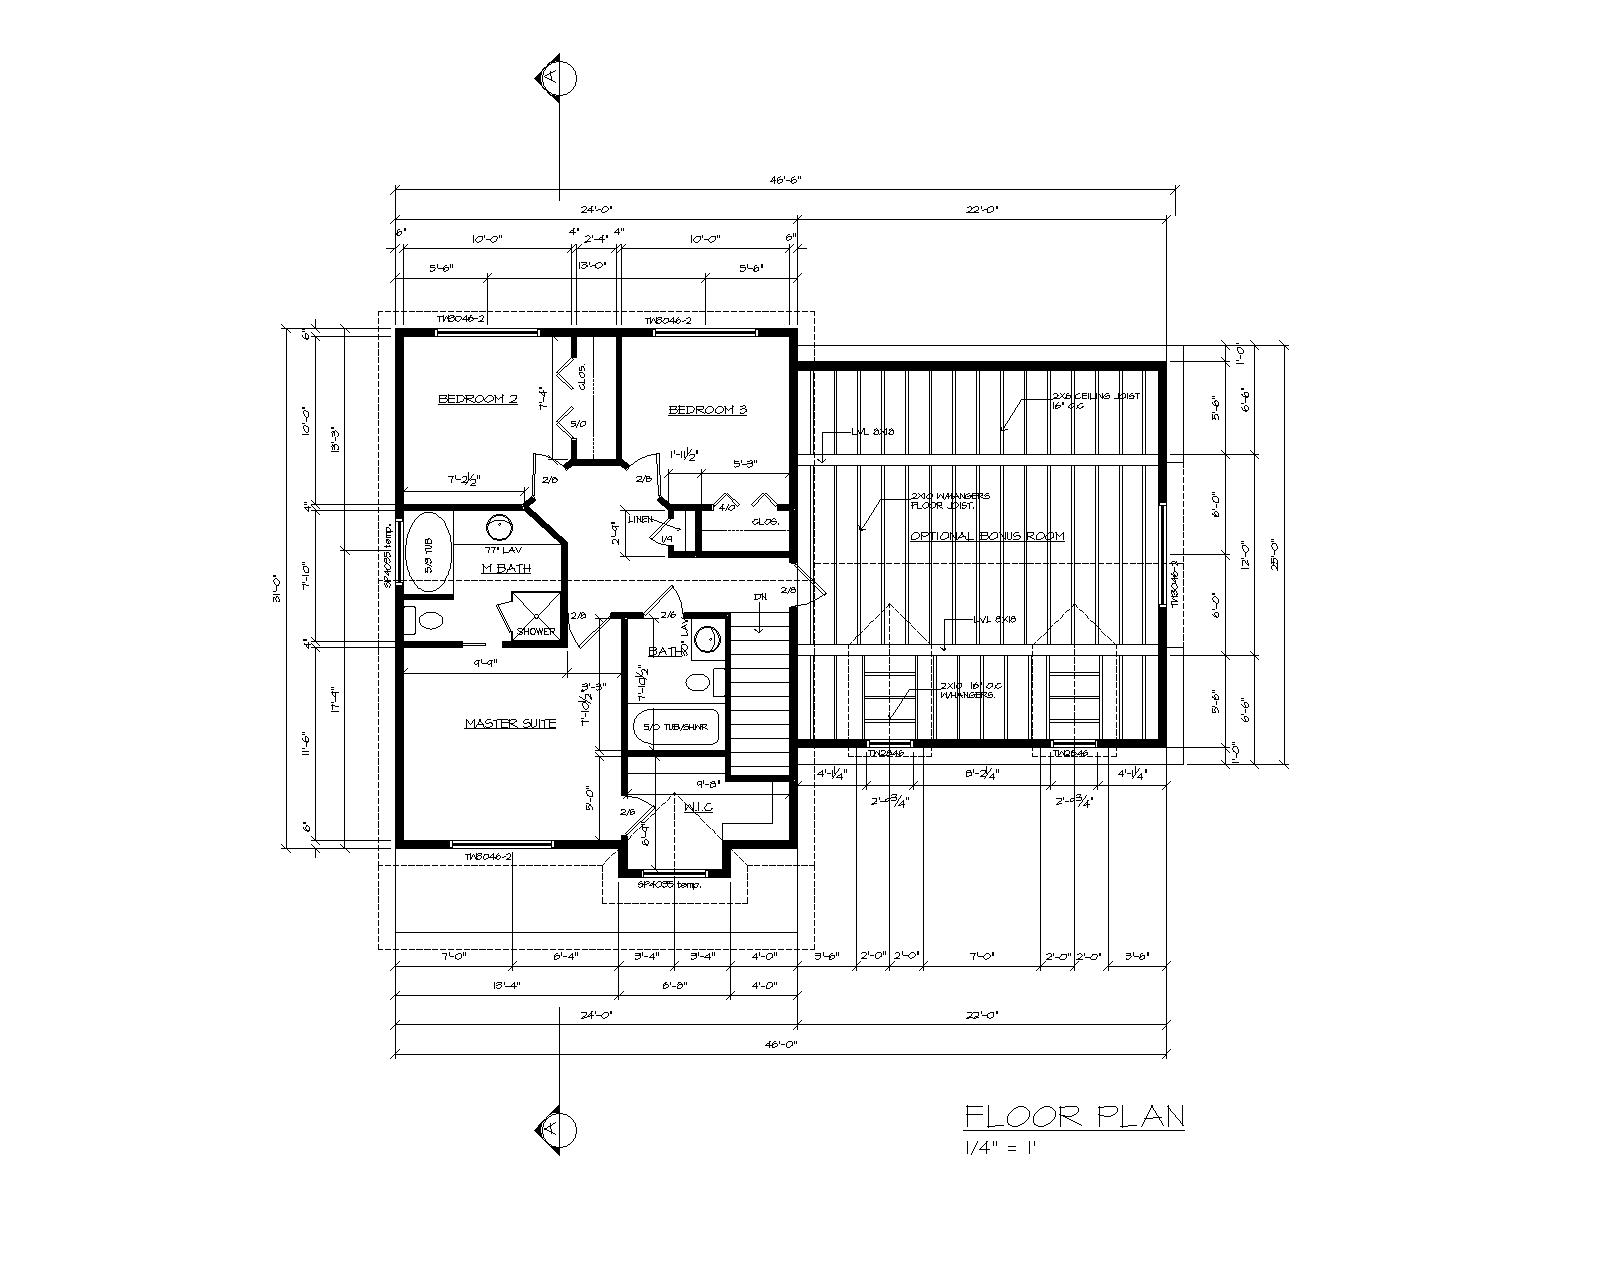 Autocad house drawing 2d joy studio design gallery for Autocad house drawings